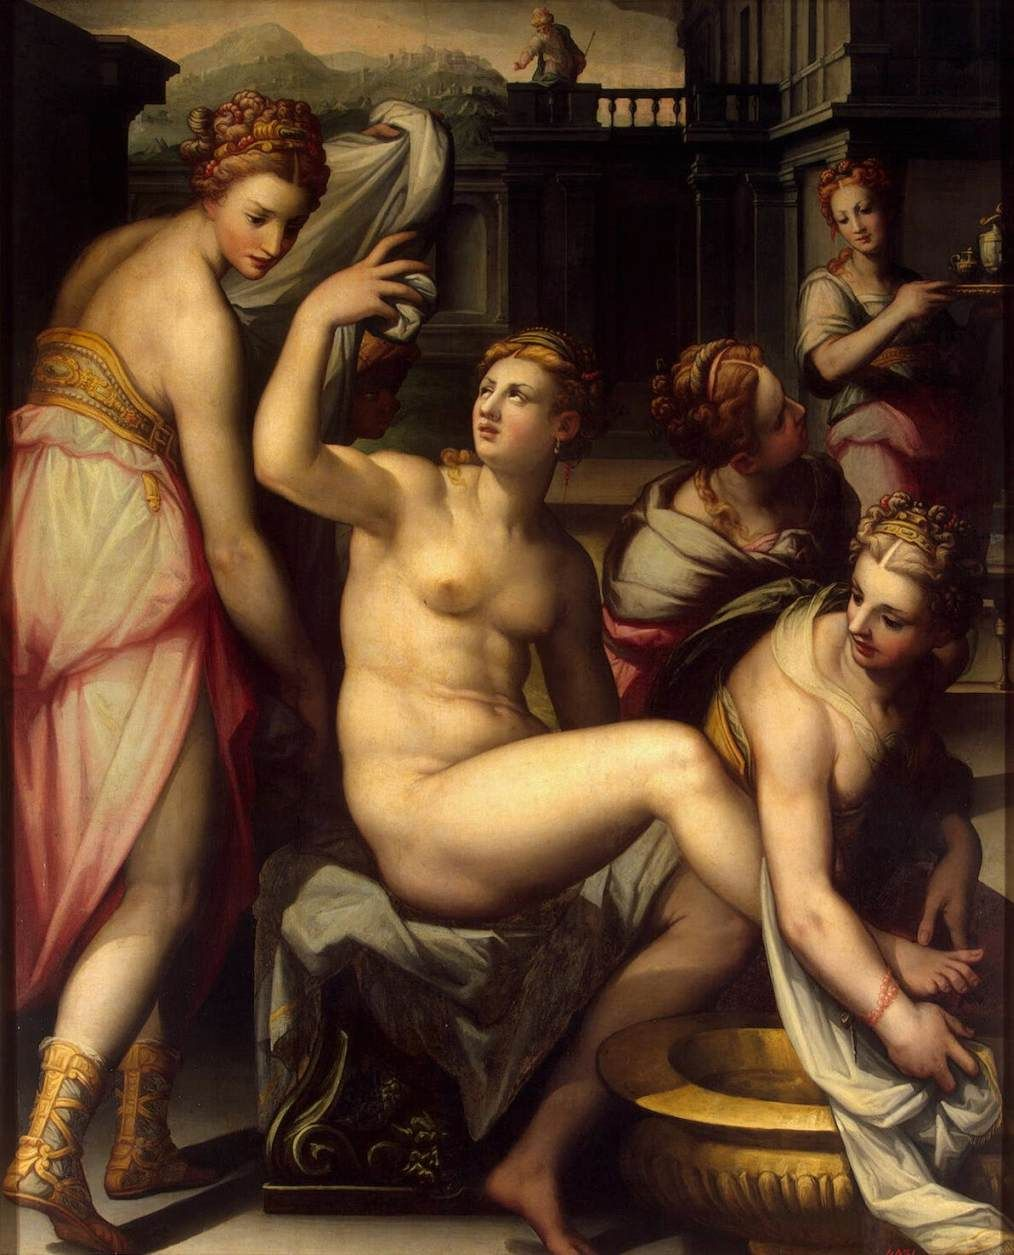 NALDINI, Giovan Battista Italian painter, Florentine school (b. ca. 1537, Fiesole, d. 1591, Firenze) Bathsheba1570sOil on canvas, 182 x 150 cmThe Hermitage, St. Petersburg